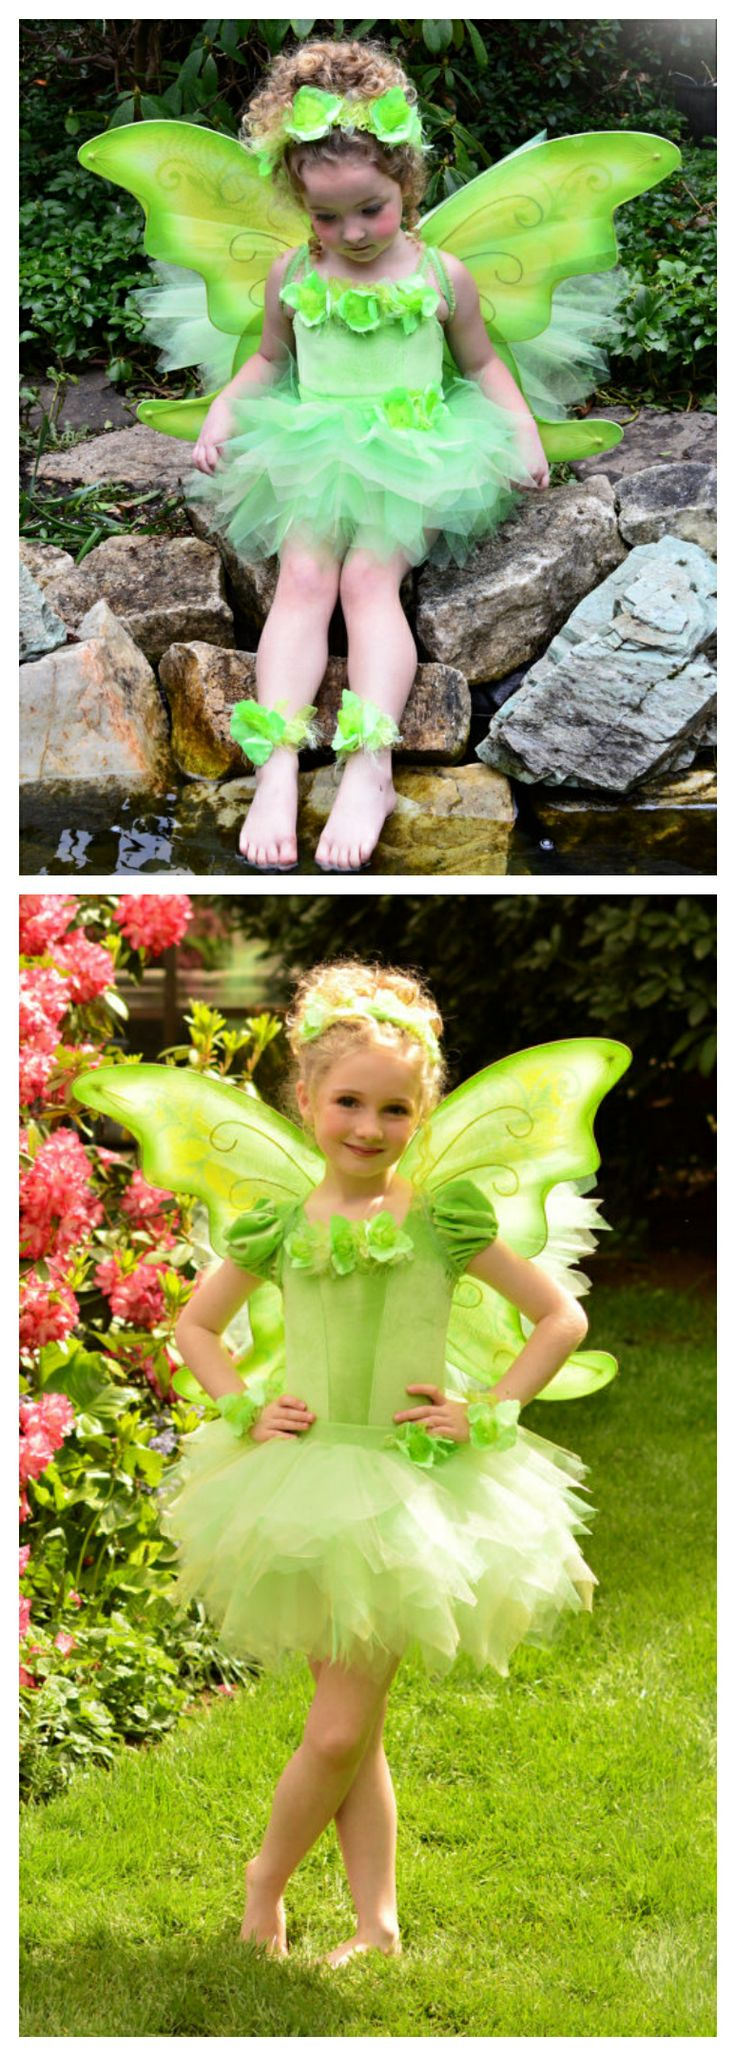 Click here to shop Deluxe Tinker Bell Fairy Tutu Dress Costume from Tinker Bell and Friends by Ella Dynae, $220.00 https://www.etsy.com/listing/121595901/deluxe-tinkerbell-disney-inspired-tinker?ref=shop_home_active_18 #disney #fairy #tinkerbell As seen on The Secret of the Wings and The Pirate Fairy.